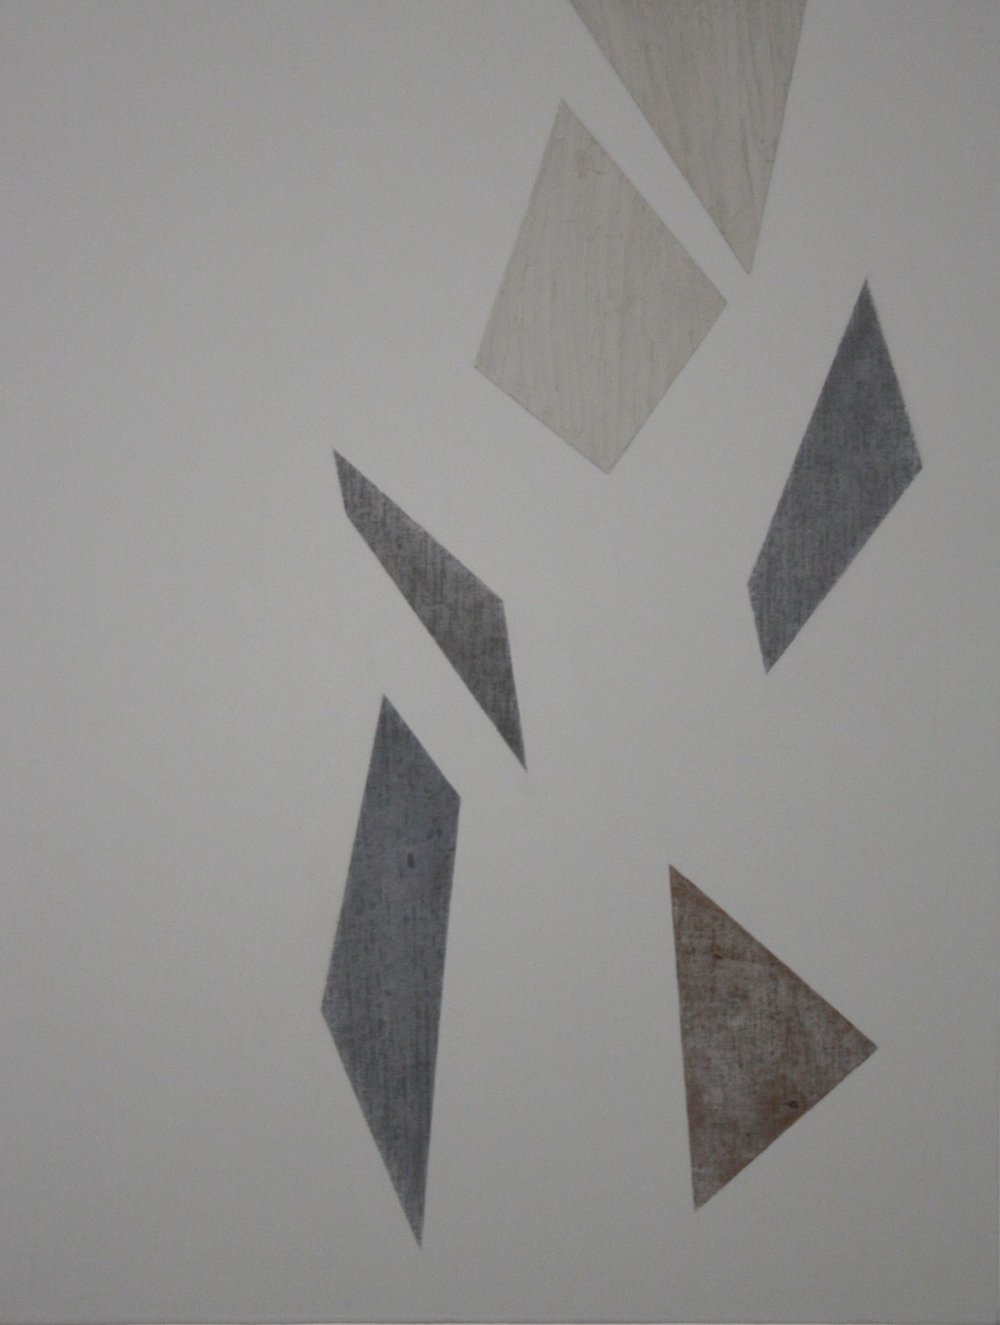 Degrees of Separation 1, ii, 2010, acrylic and graphite on canvas 56 x 43 cm